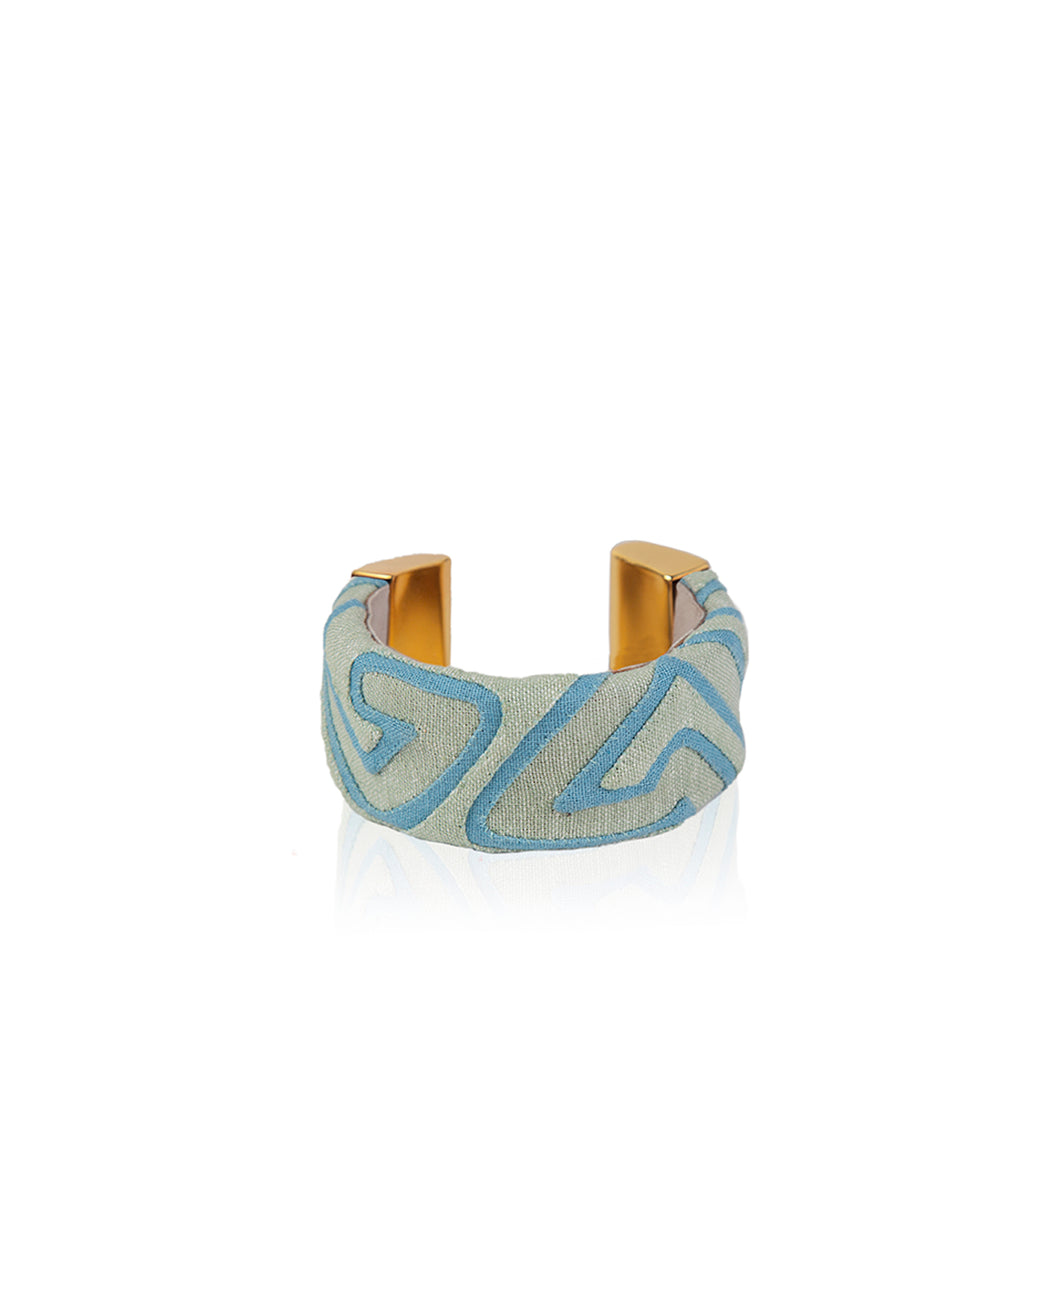 Seafoam Bajo Kuna bangle